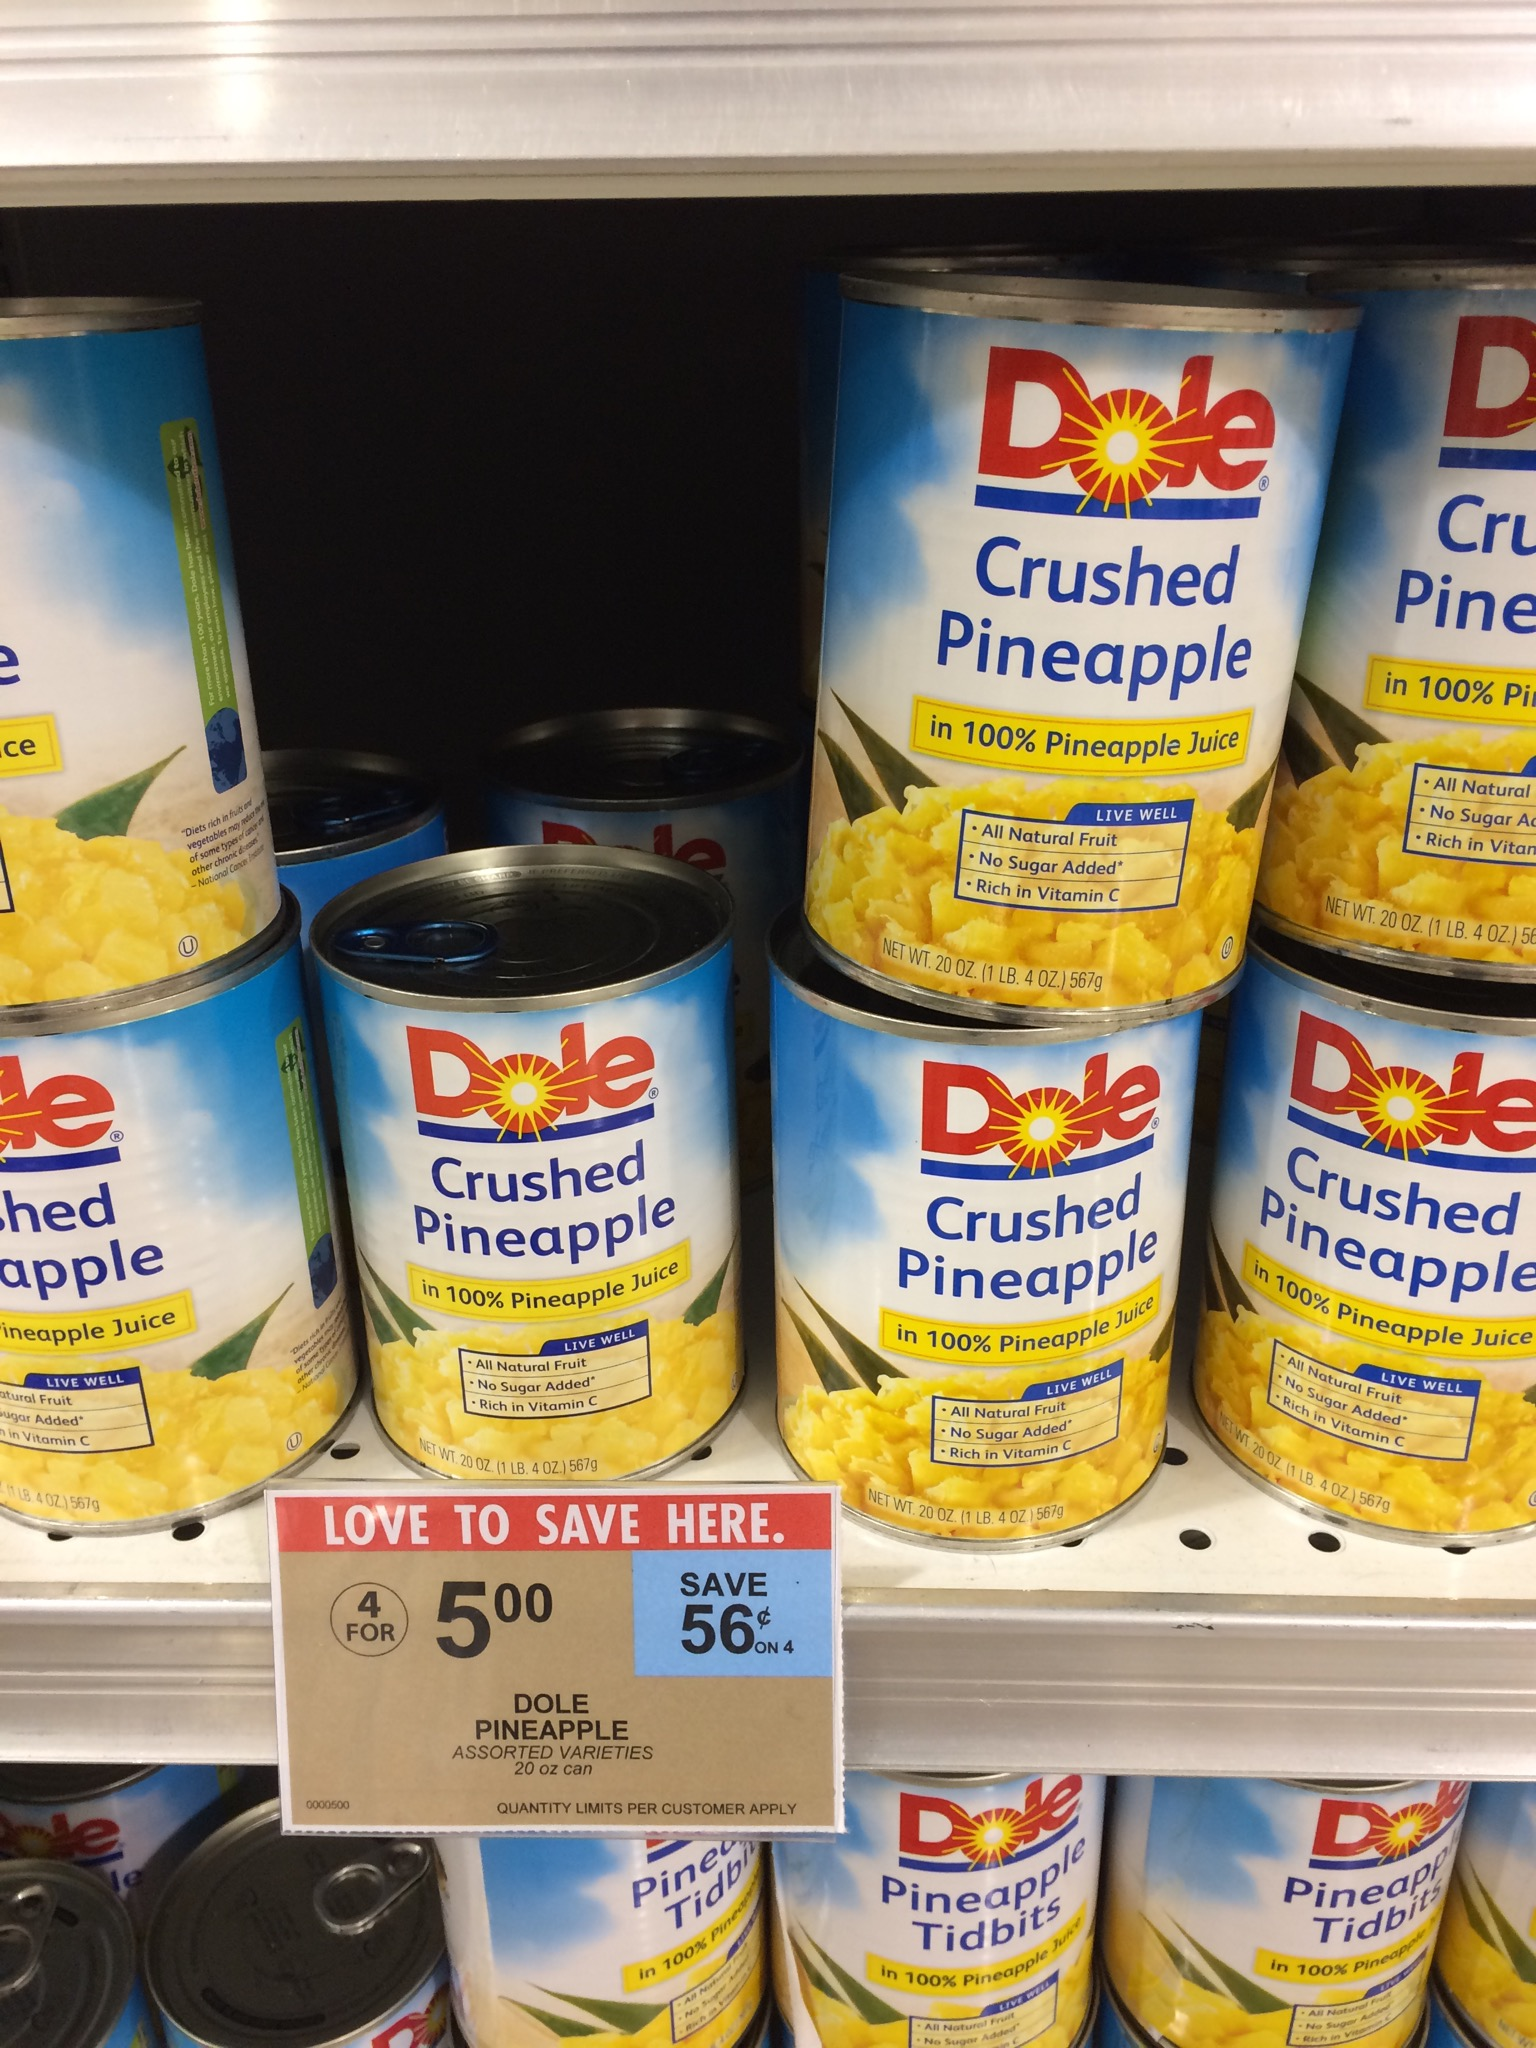 Publix Extra Finds: Free McCormick Spice, $.99 Aveeno, $.90 Sara Lee Desserts & More | Passionate Penny Pincher